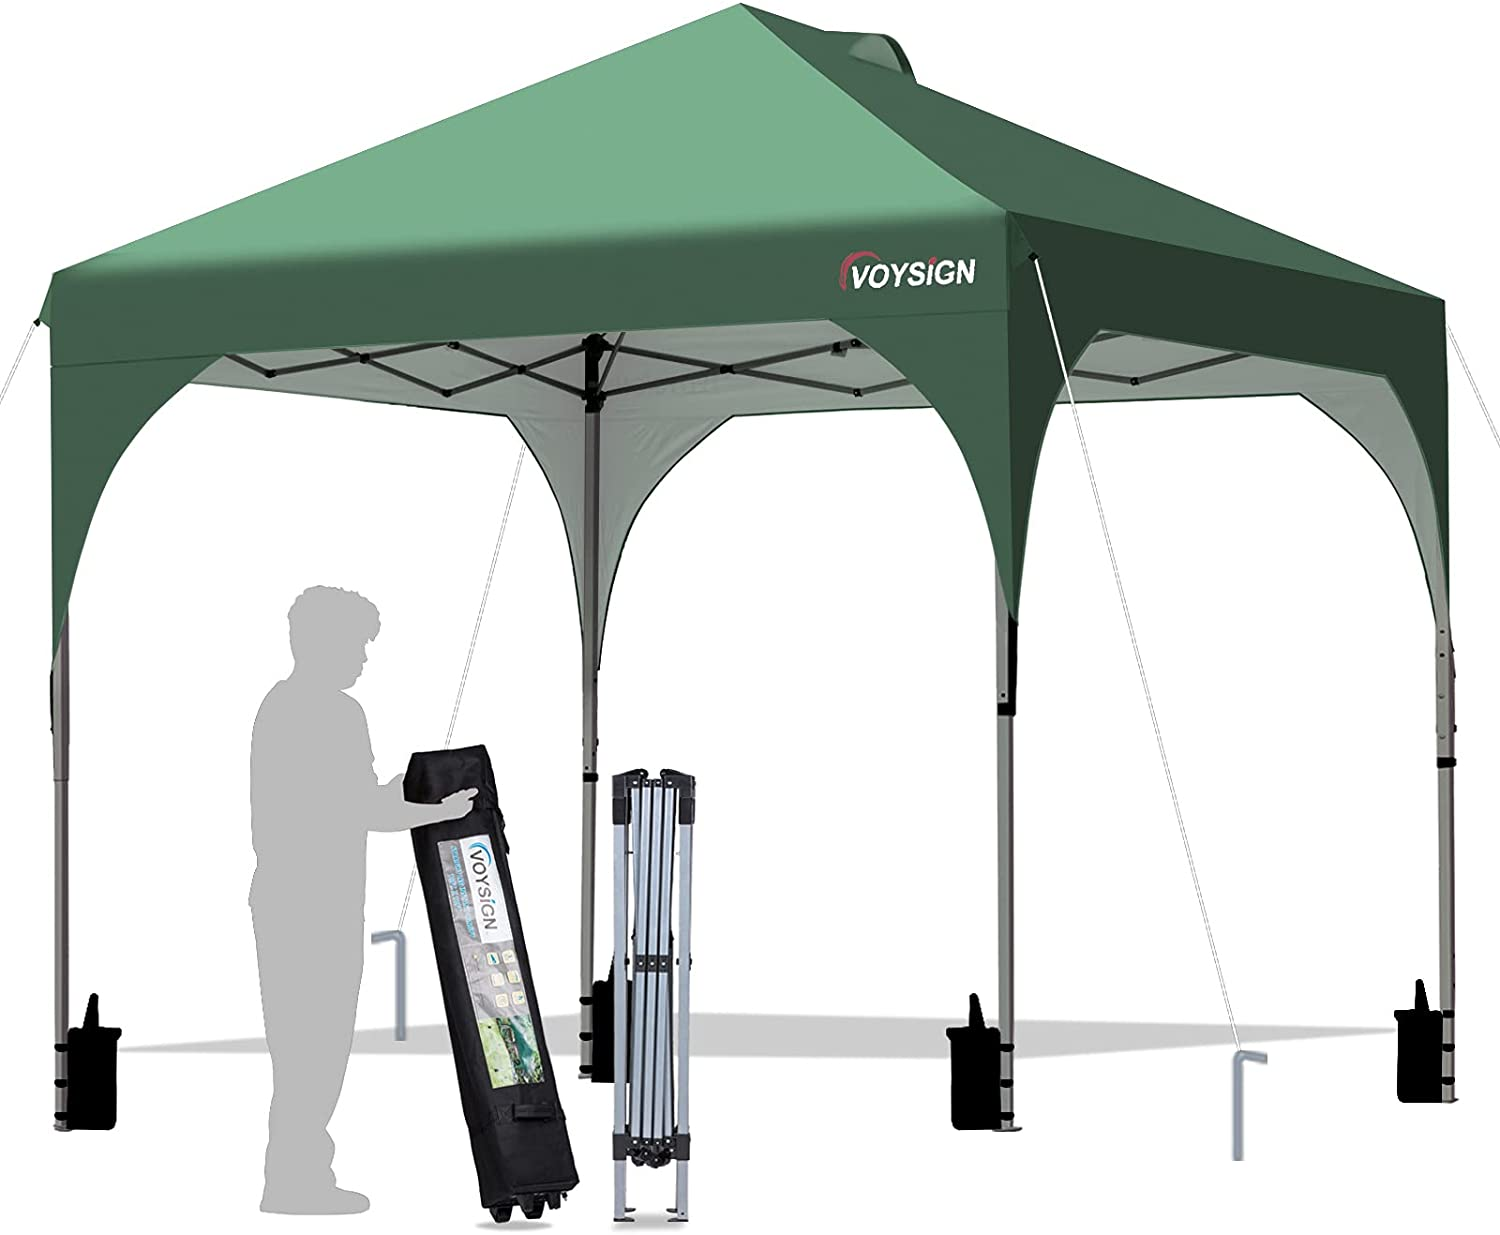 VOYSIGN 10x10 Pop Up Canopy Tent, Outdoor Instant Sun Shelter - Green, Included 1 x Rolling Storage Wheeled Bag, 4 x Weights Bags, 4 x Guylines, 8 x Stakes